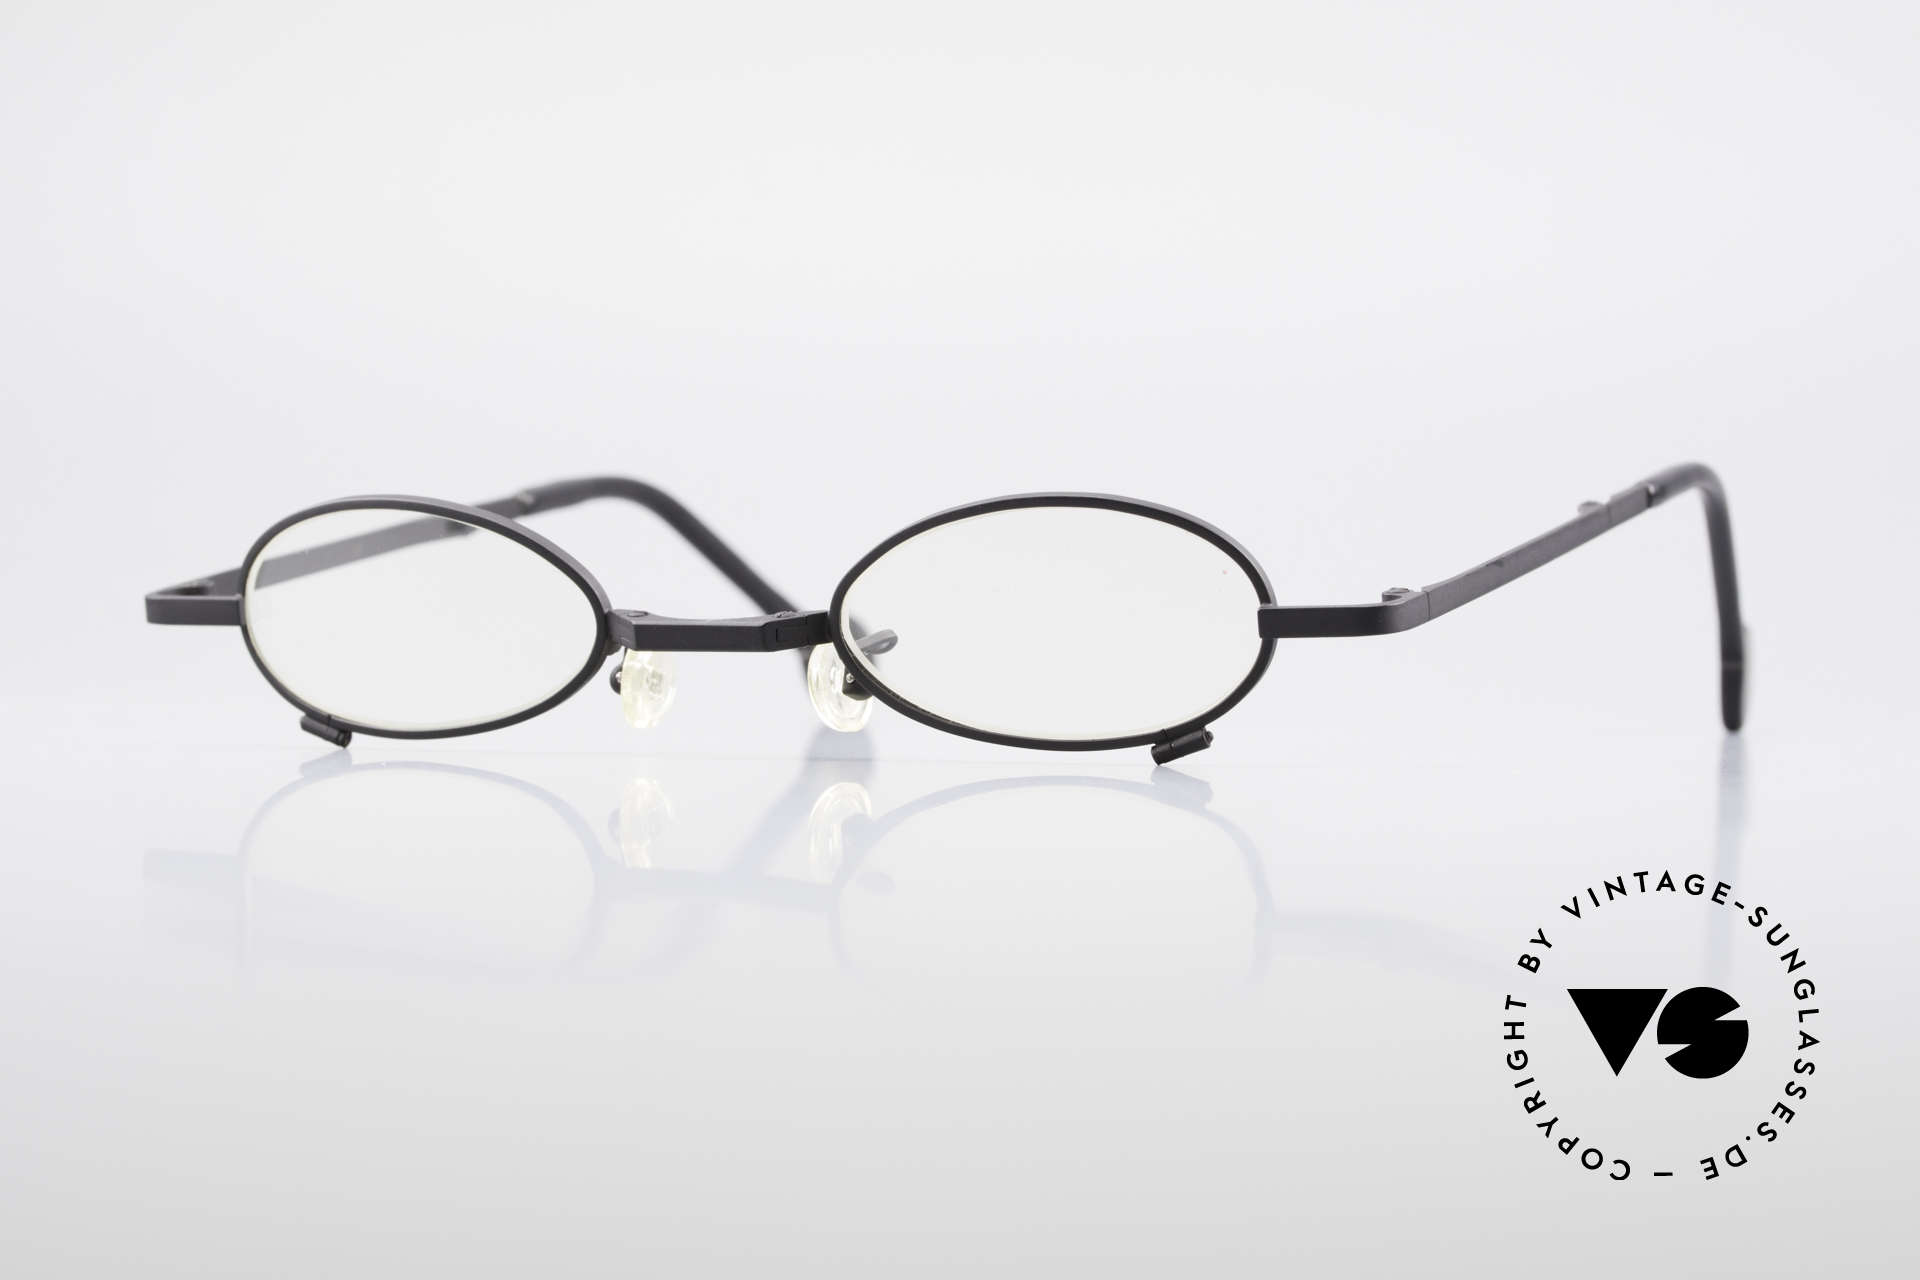 L.A. Eyeworks TIO 412 Vintage Foldable Eyeglasses, L.A. Eyeworks: limited-lot productions from Los Angeles, Made for Men and Women